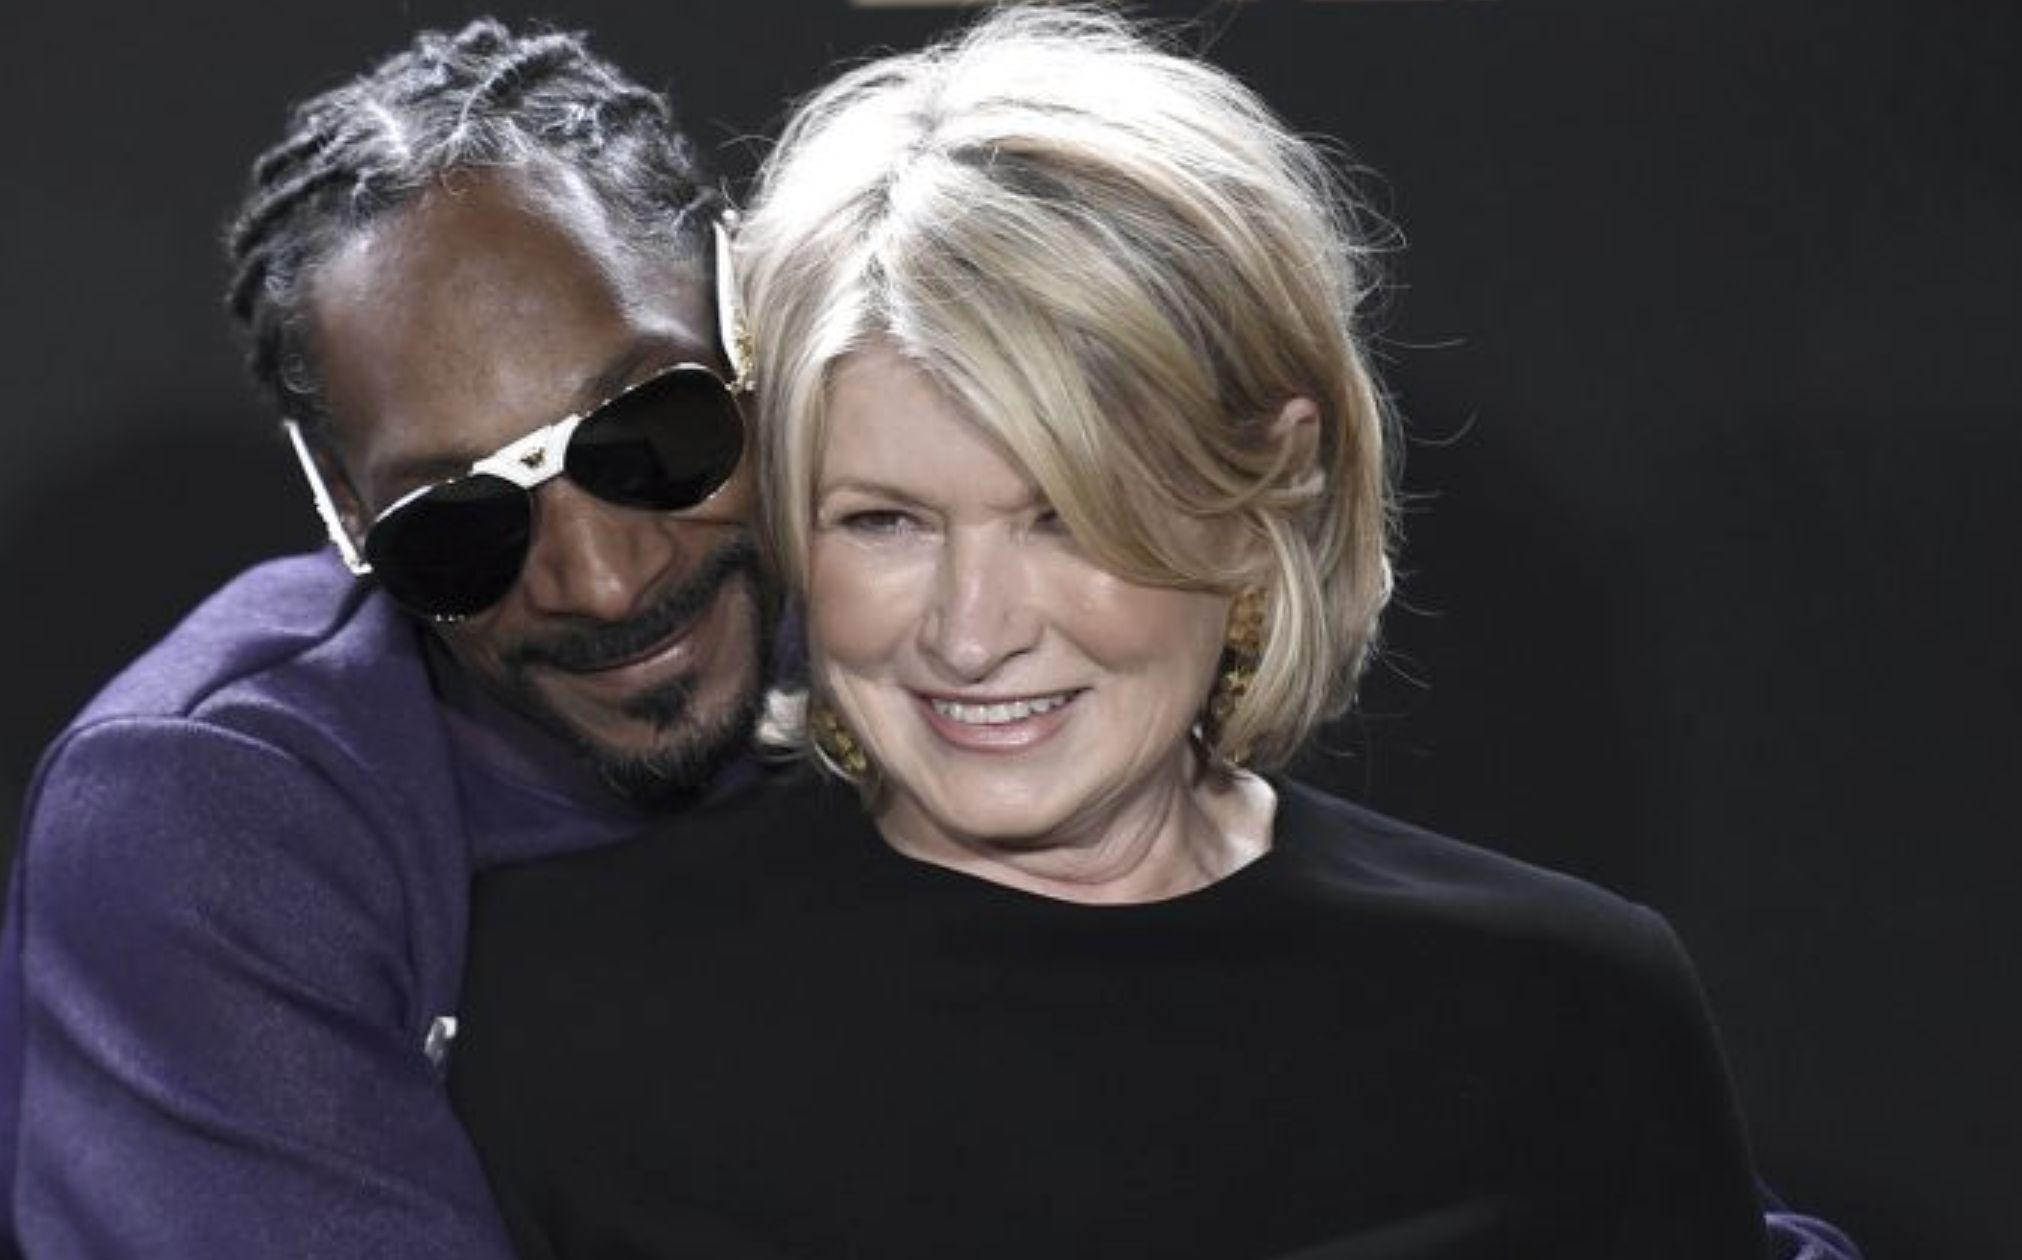 Martha Stewart on investing in Canopy Growth: 'It's an alternative to opioids'